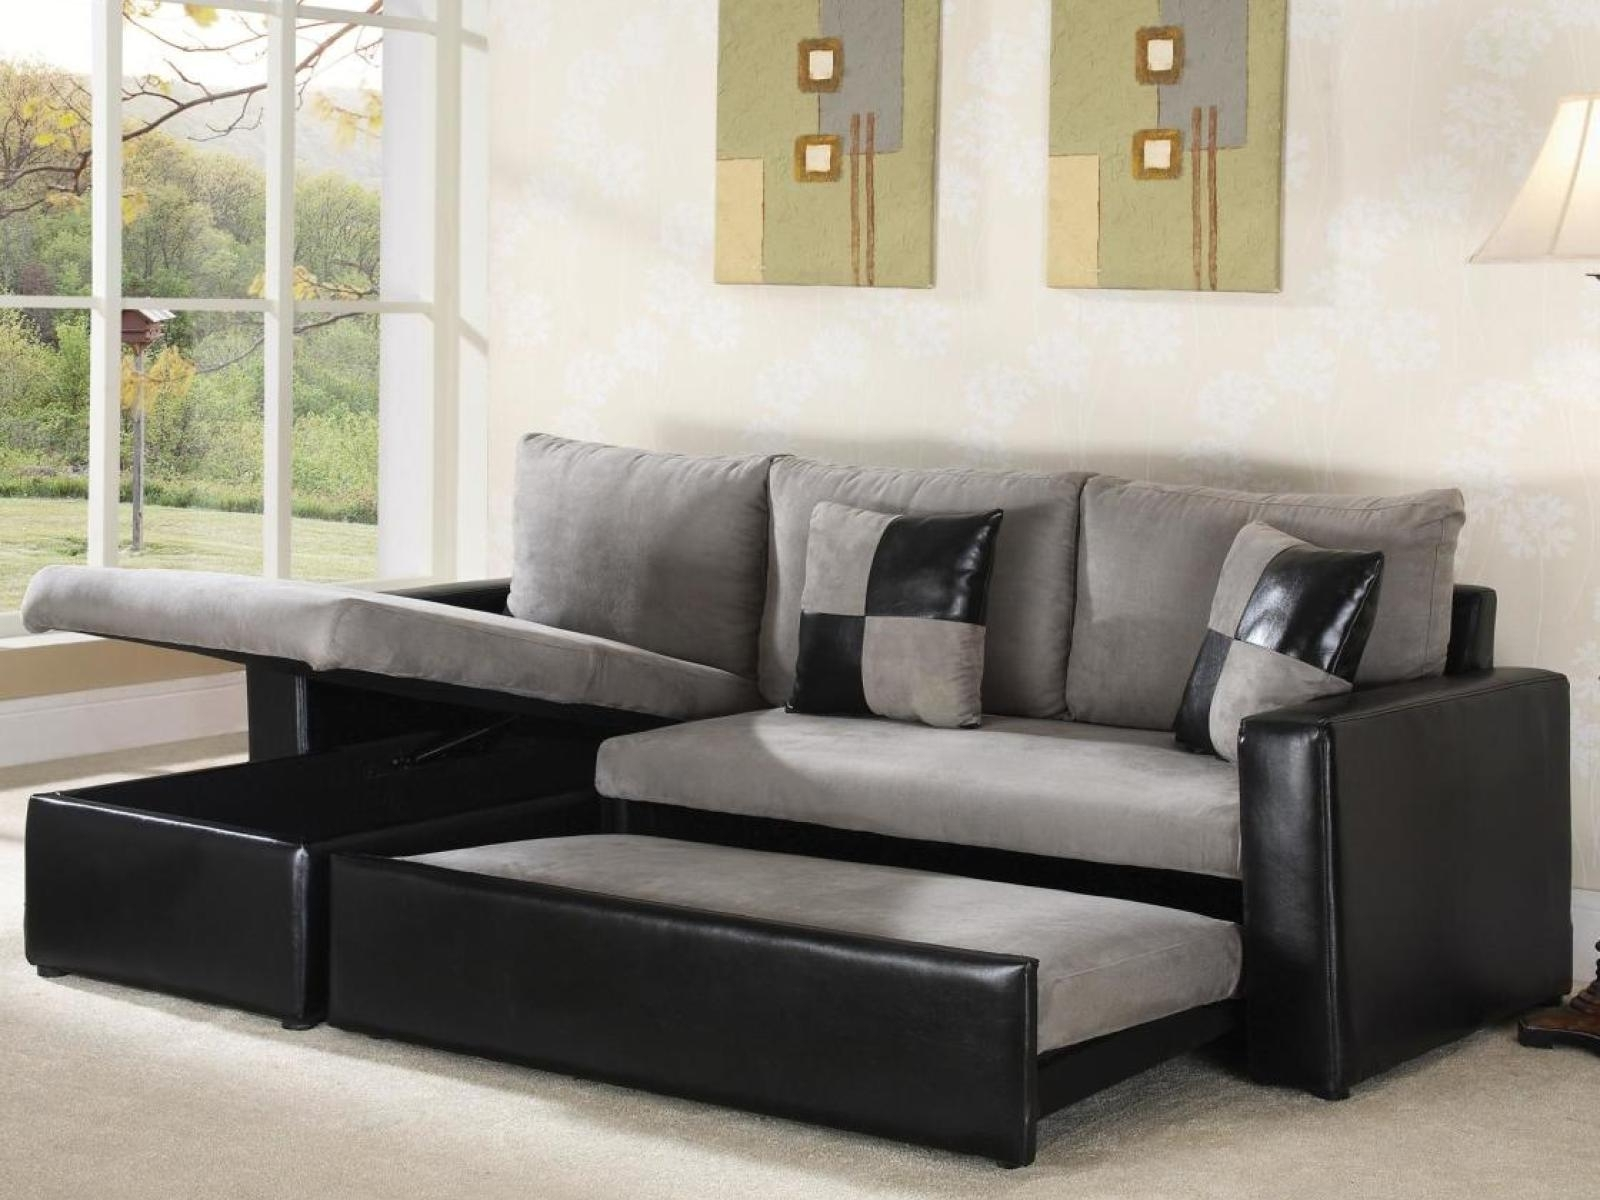 L Shaped Sectional Sleeper Sofas In Recent L Shaped Sectional Sleeper Sofa – Ansugallery (View 7 of 15)